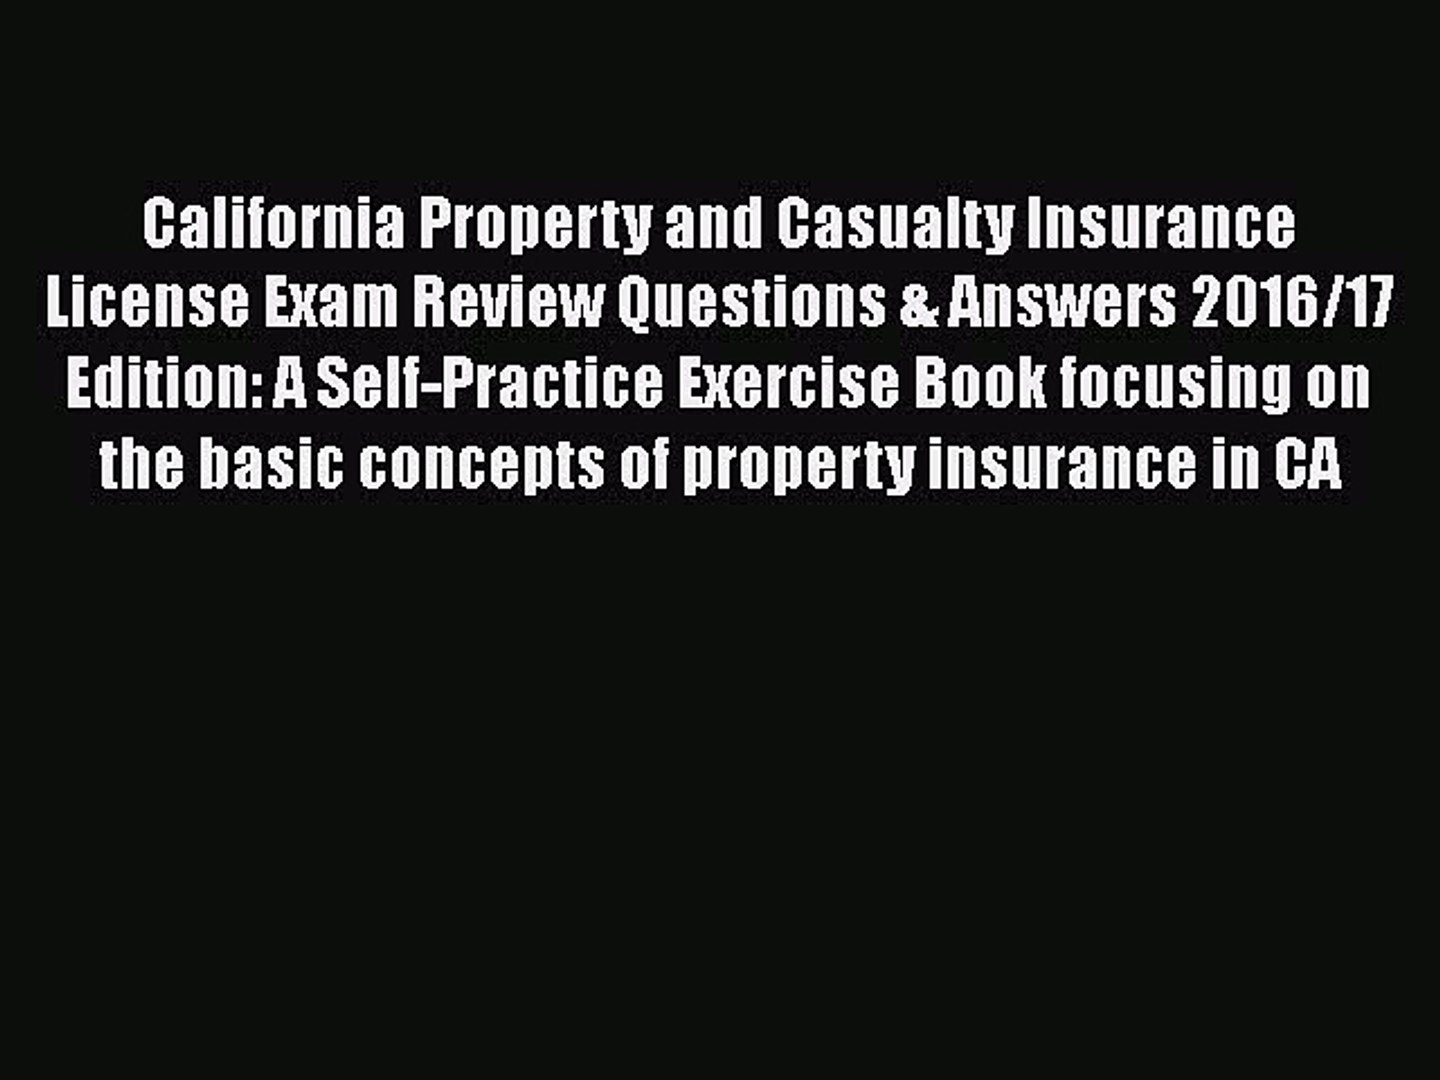 Download California Property and Casualty Insurance License Exam Review Questions & Answers